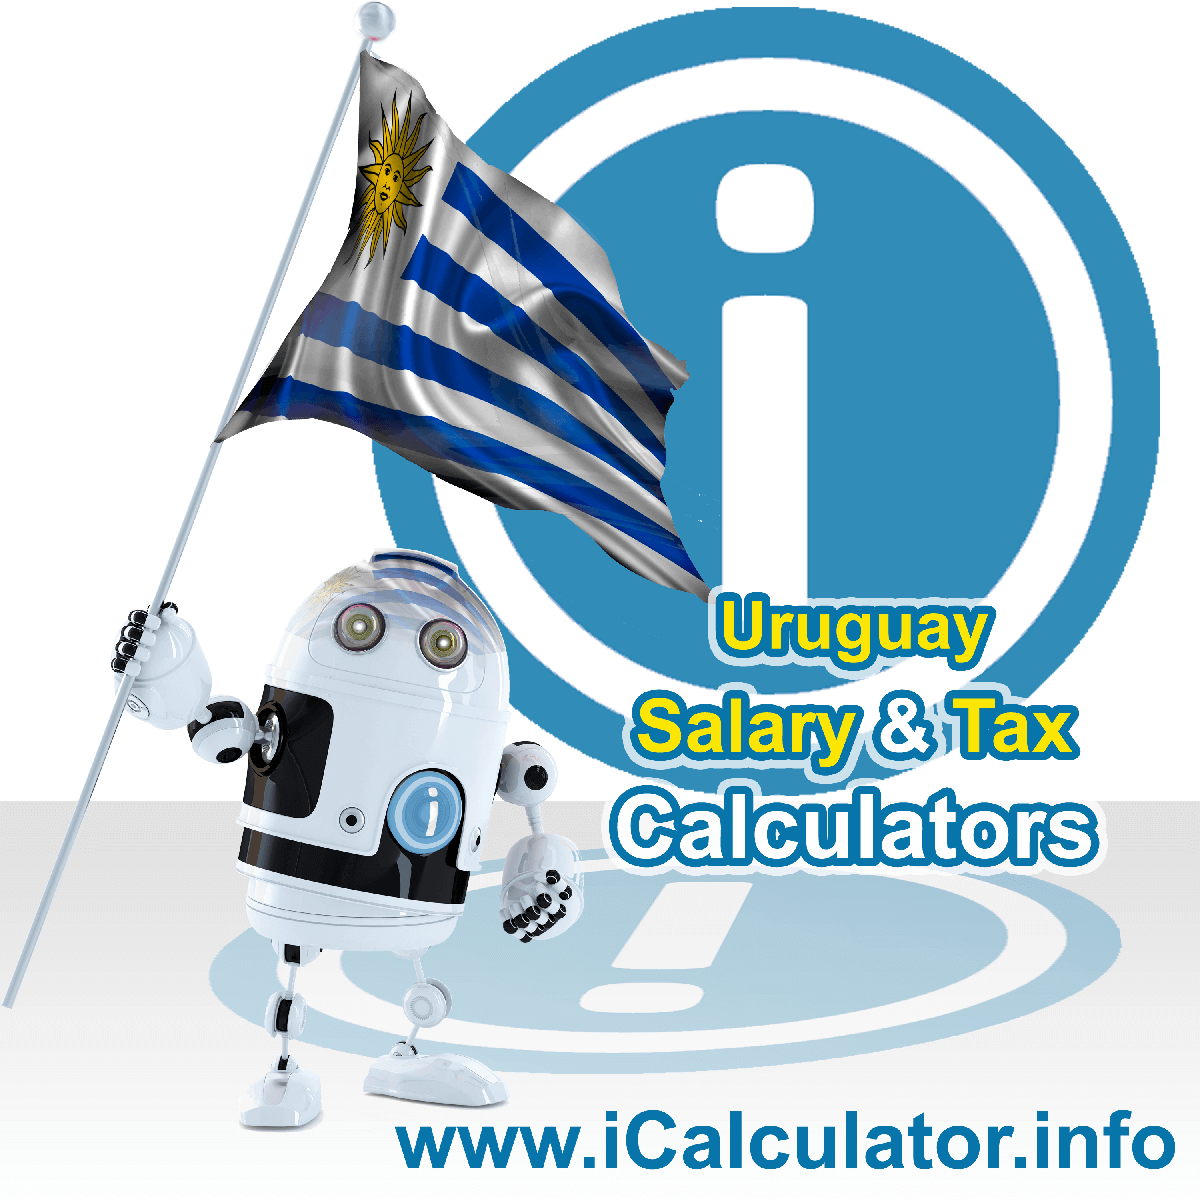 Uruguay Tax Calculator. This image shows the Uruguay flag and information relating to the tax formula for the Uruguay Salary Calculator